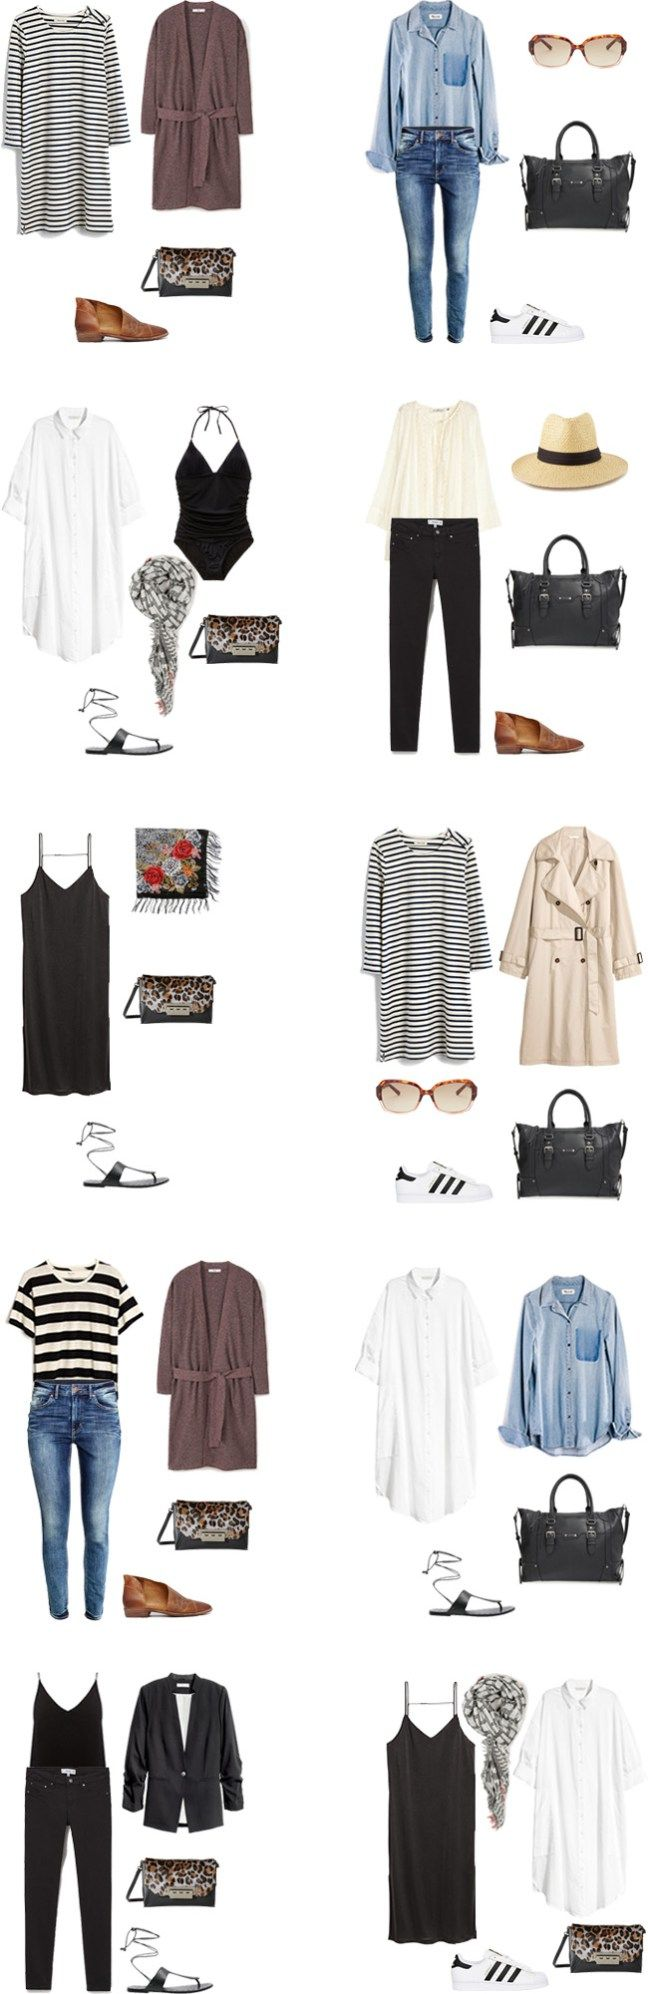 What to Wear in Italy and on a Mediterranean Cruise Outfit Options 21-30 #travellight #packinglight #traveltips #travel